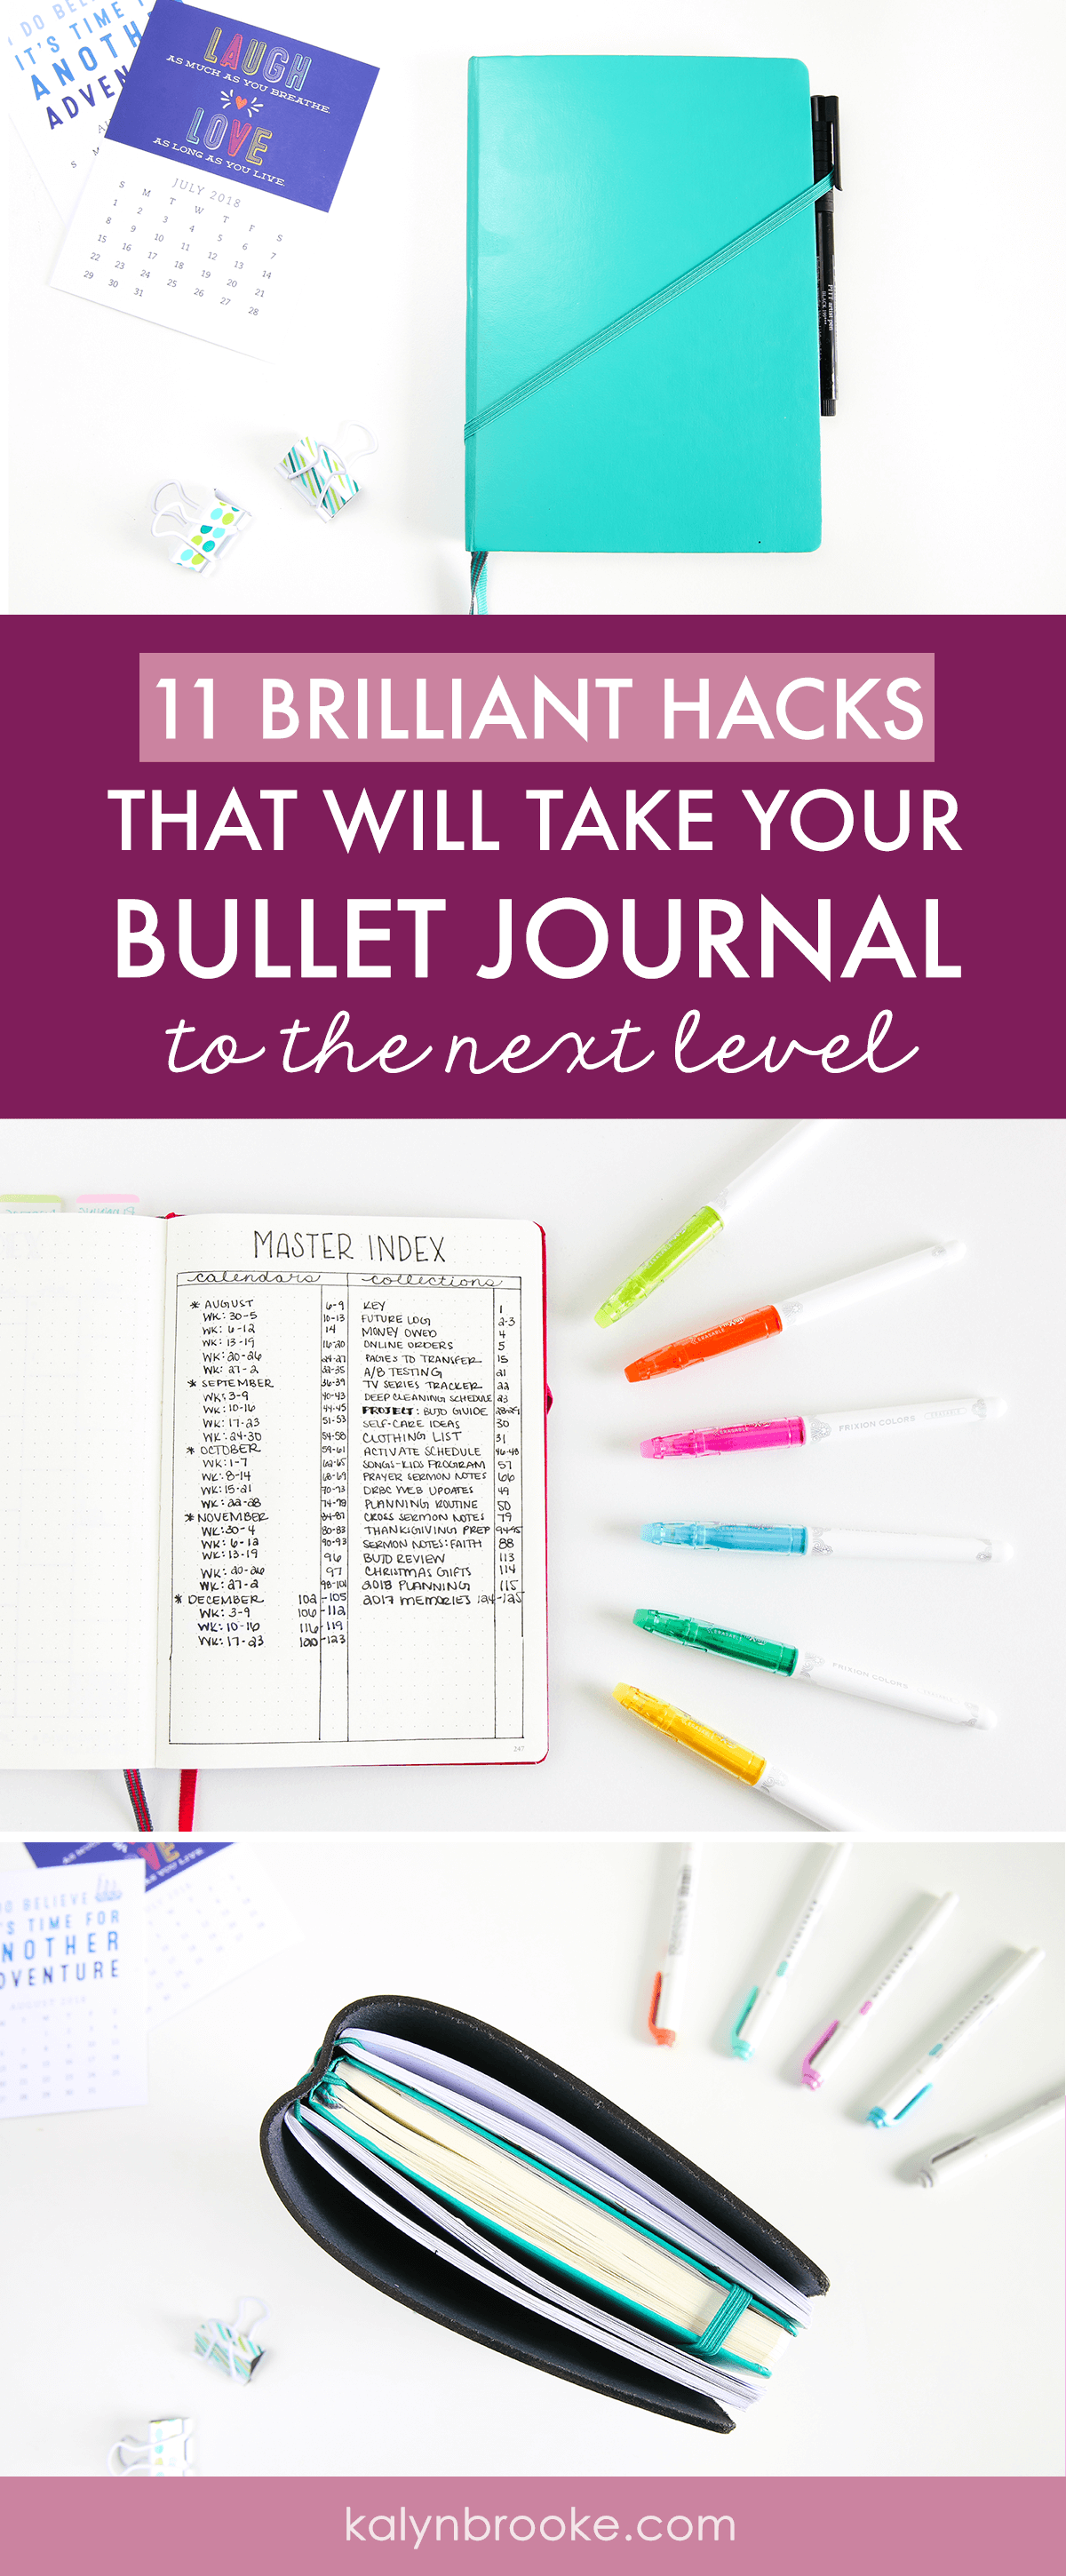 Okay, so here's the deal: I totally love my bullet journal but some weeks I fall off the wagon because I lose my pen or can't remember what page a note is on, etc. Basically, I was an overwhelmed bullet journalist in need of bullet journal hacks that actually work to make the system work for me! These are exactly what I needed! #bujo #bulletjournaling #bulletjournalinghacks #bulletjournalingtips